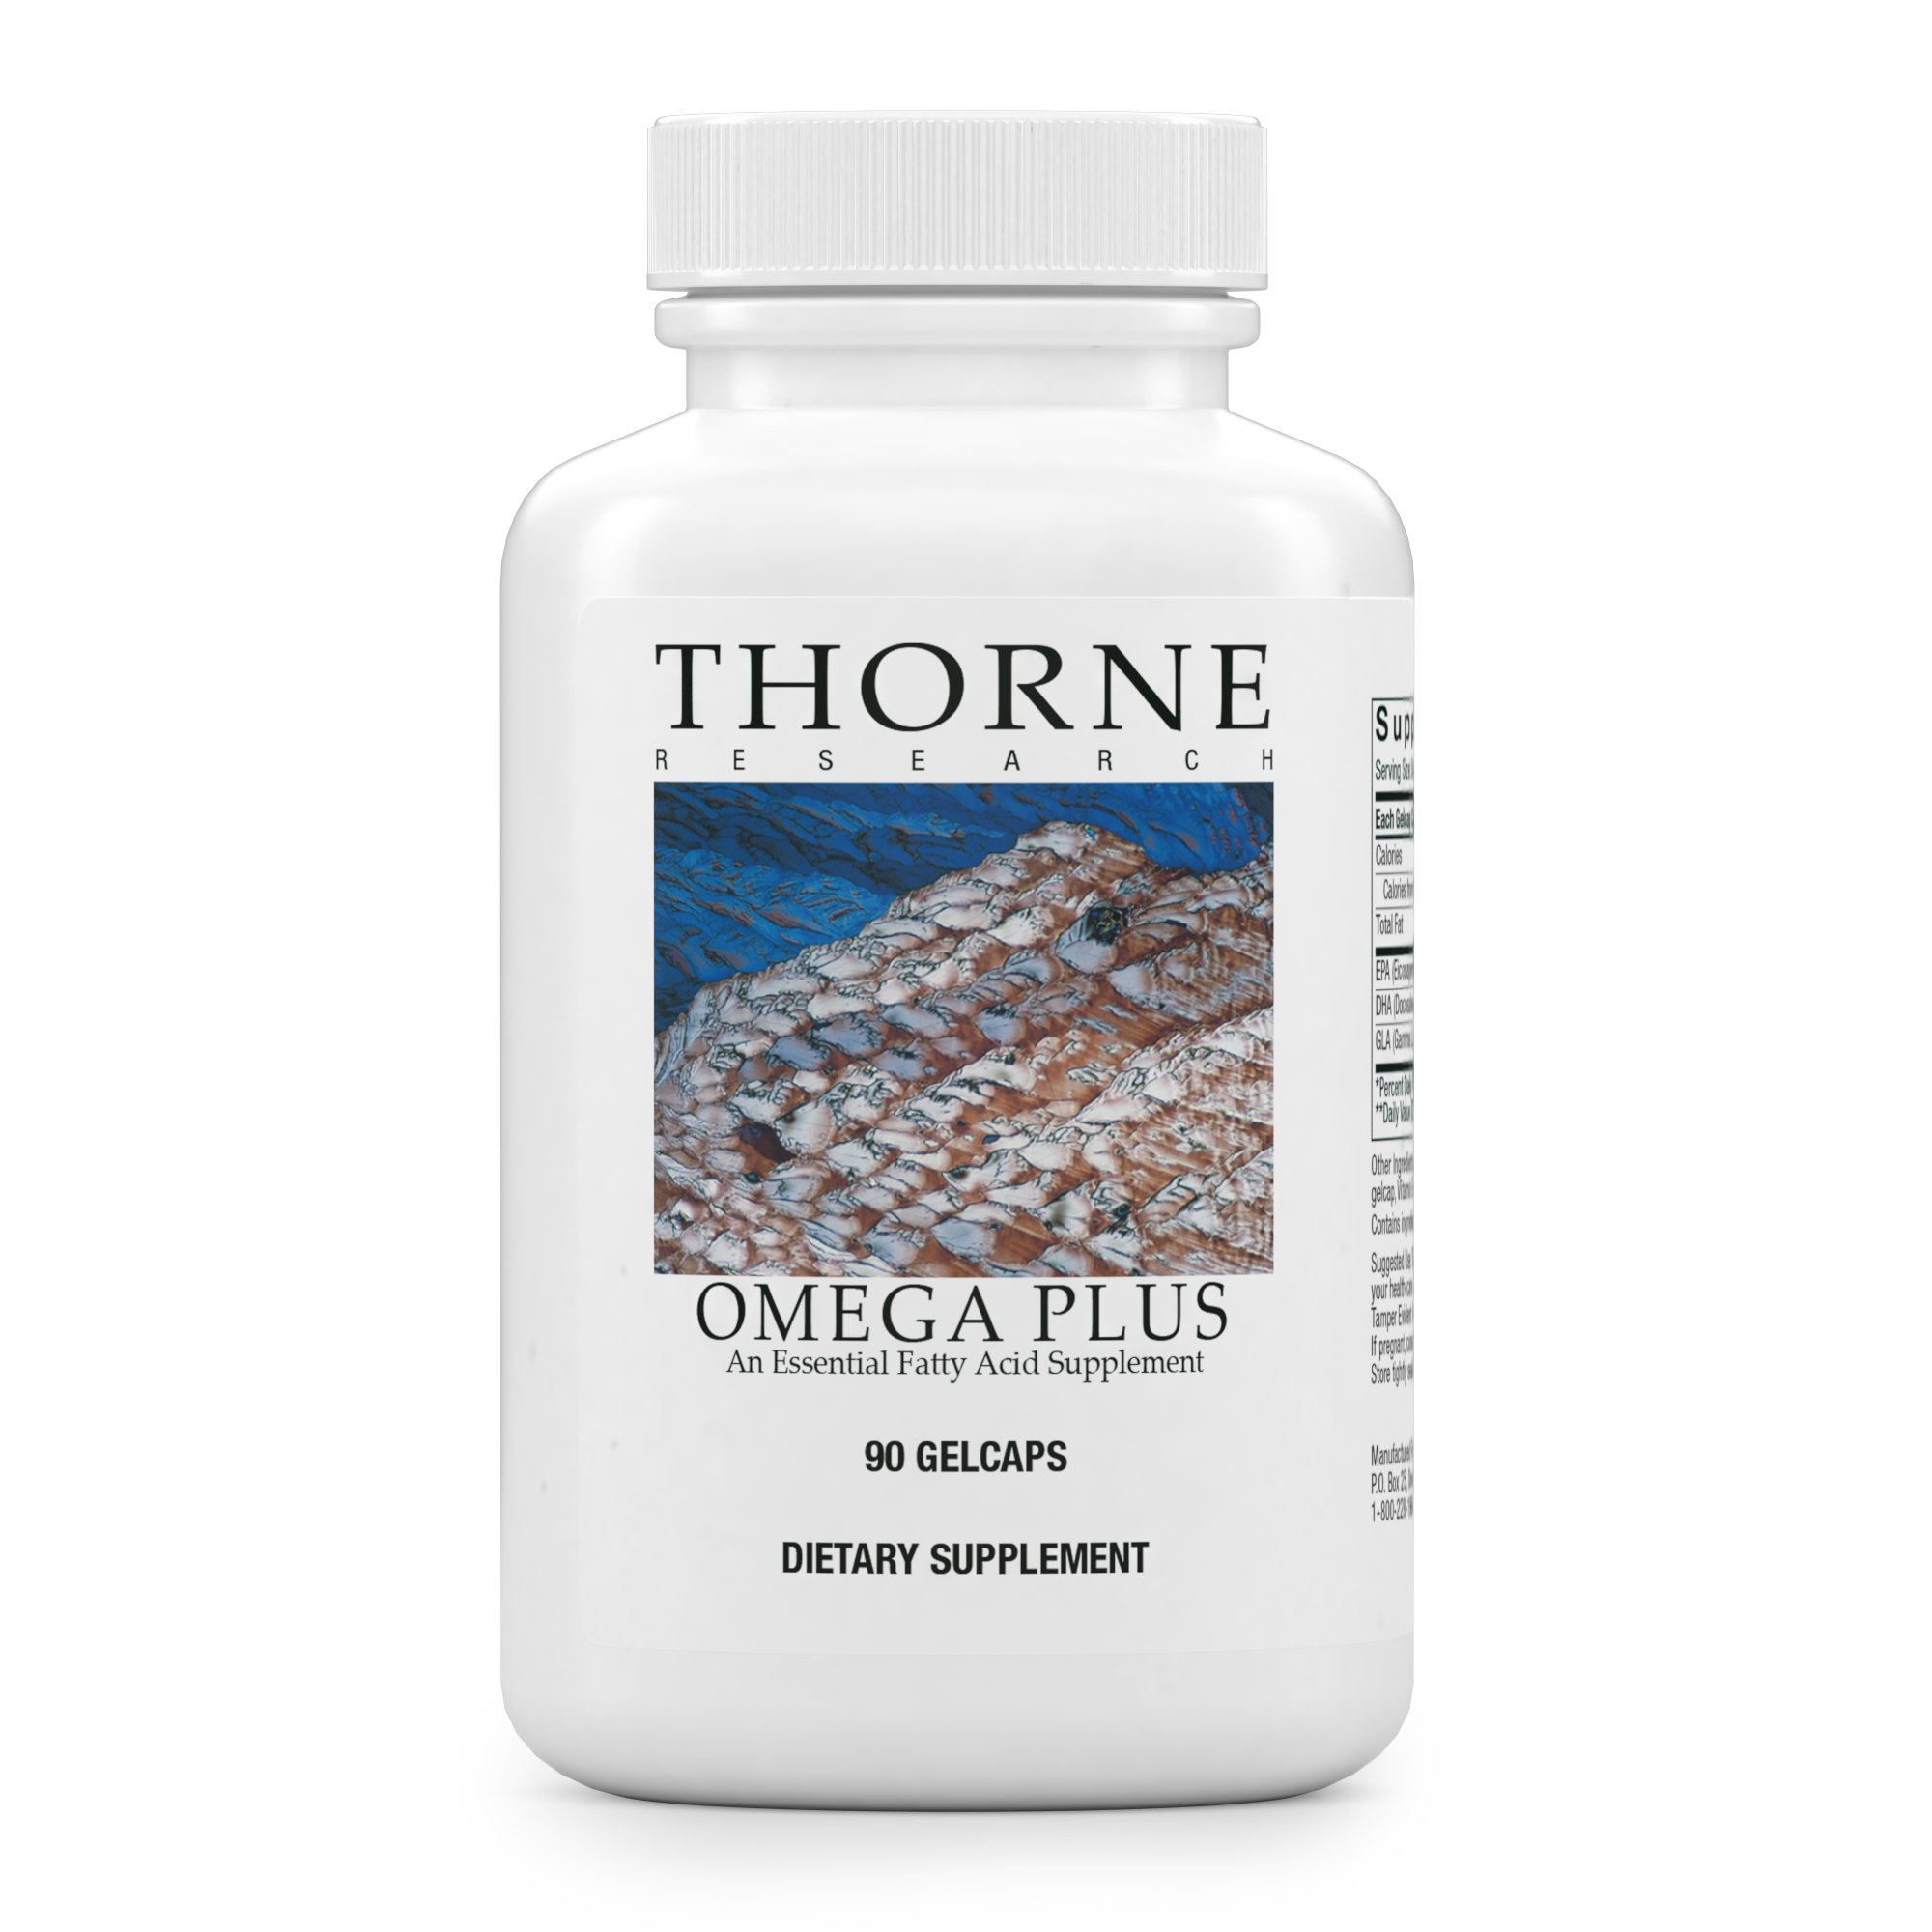 Thorne Research - Omega Plus - An Essential Fatty Acid Supplement with Omega-3 and Omega-6 - EPA, DHA, and GLA - 90 Gelcaps